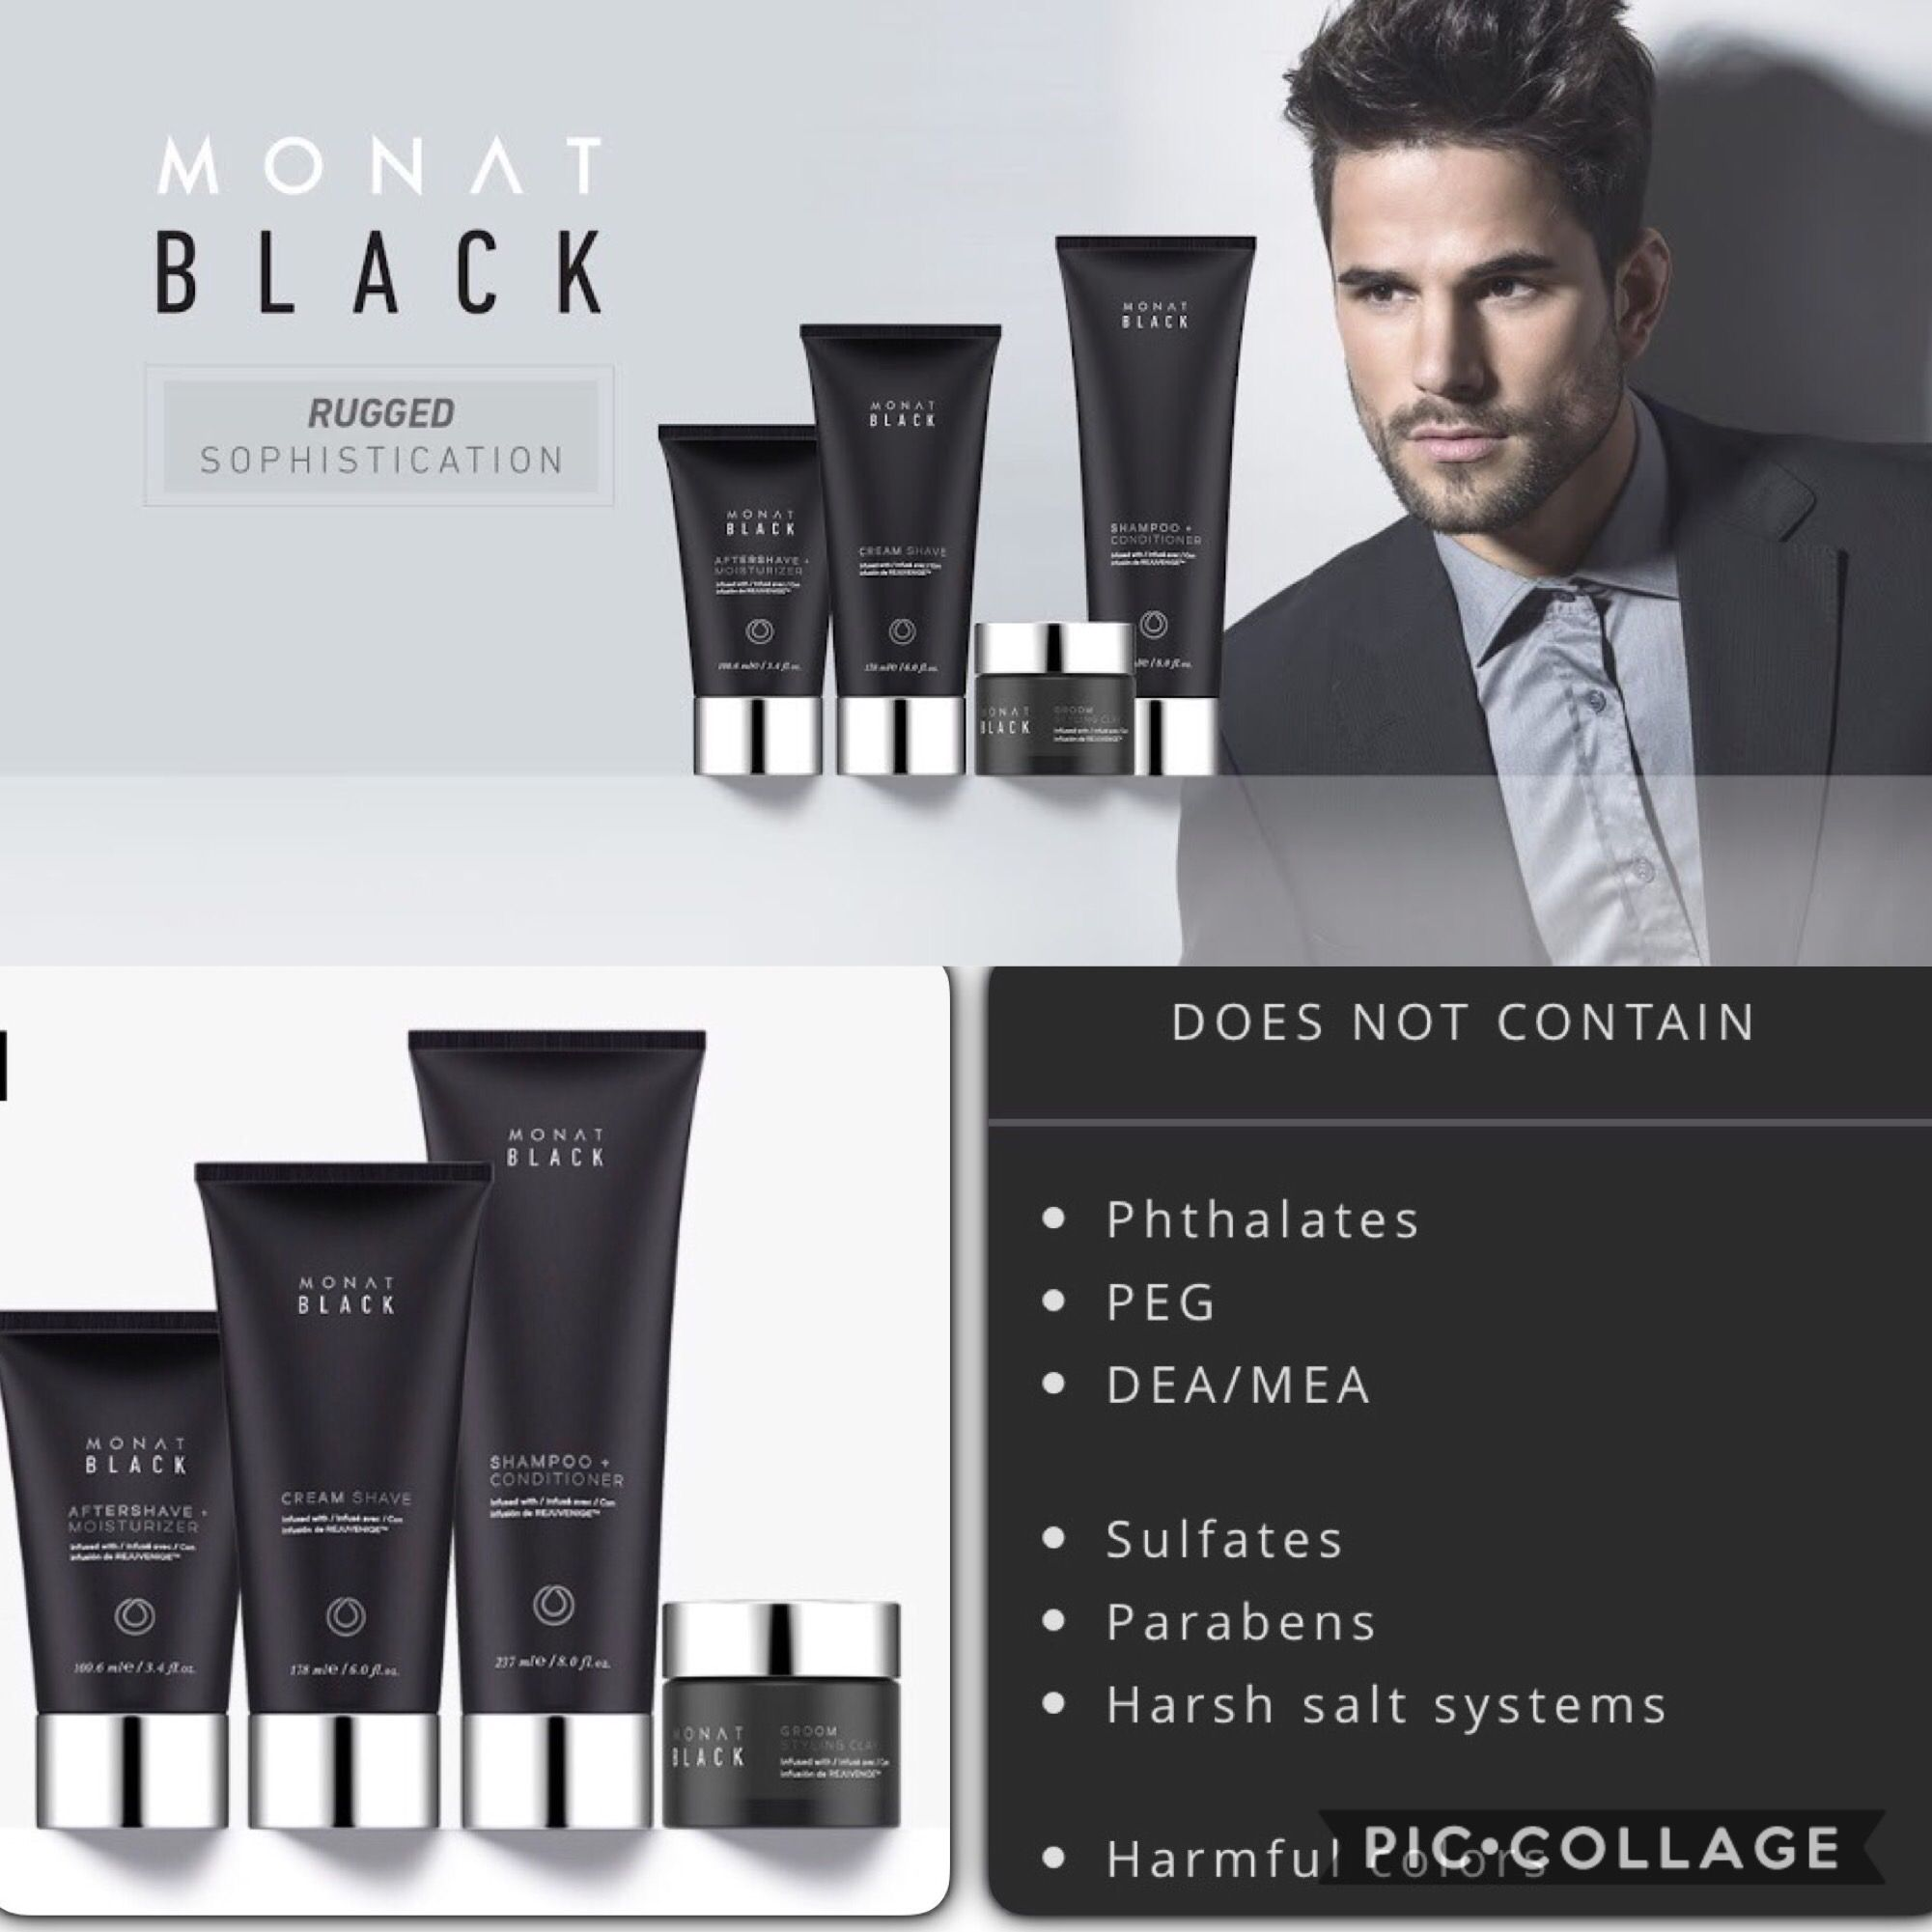 Monat Black Is A Men S Line Of Shampoo Styling Clay Cream Shave And After Shave Moisturizer Nature Based Products Tha Monat Black Shampoo Monat Black Monat